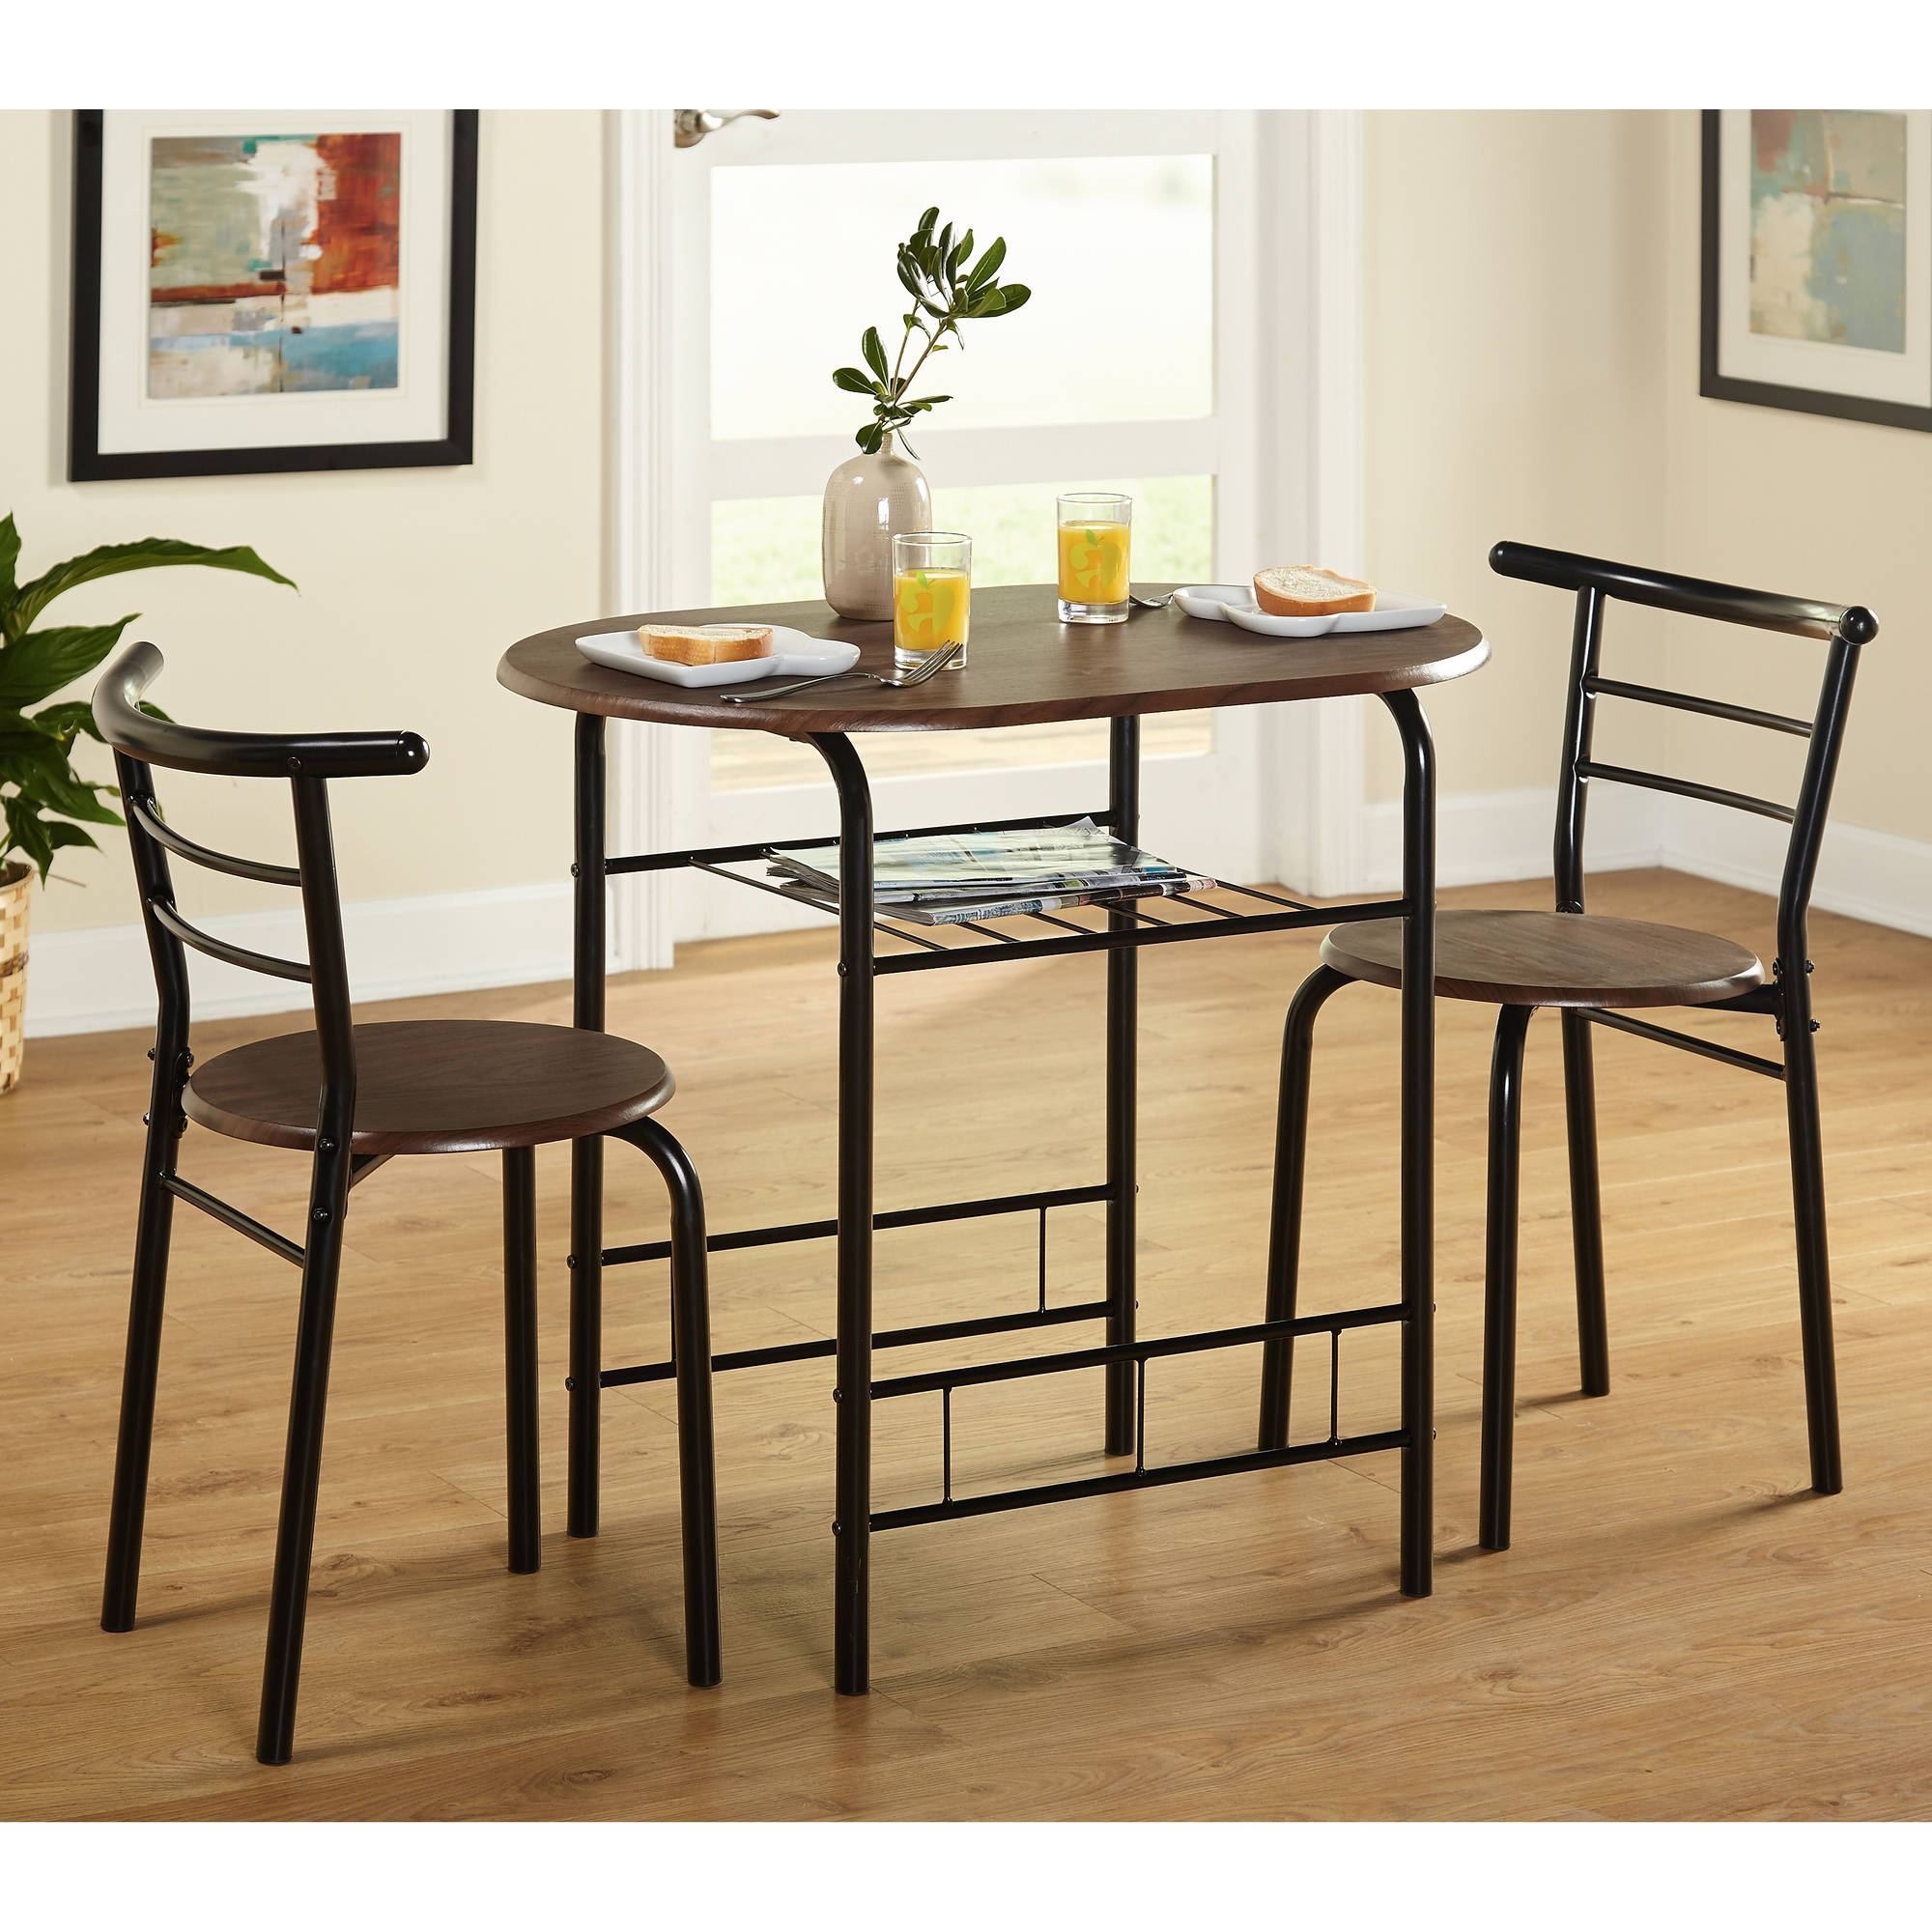 Dining Table Sets In Walmart